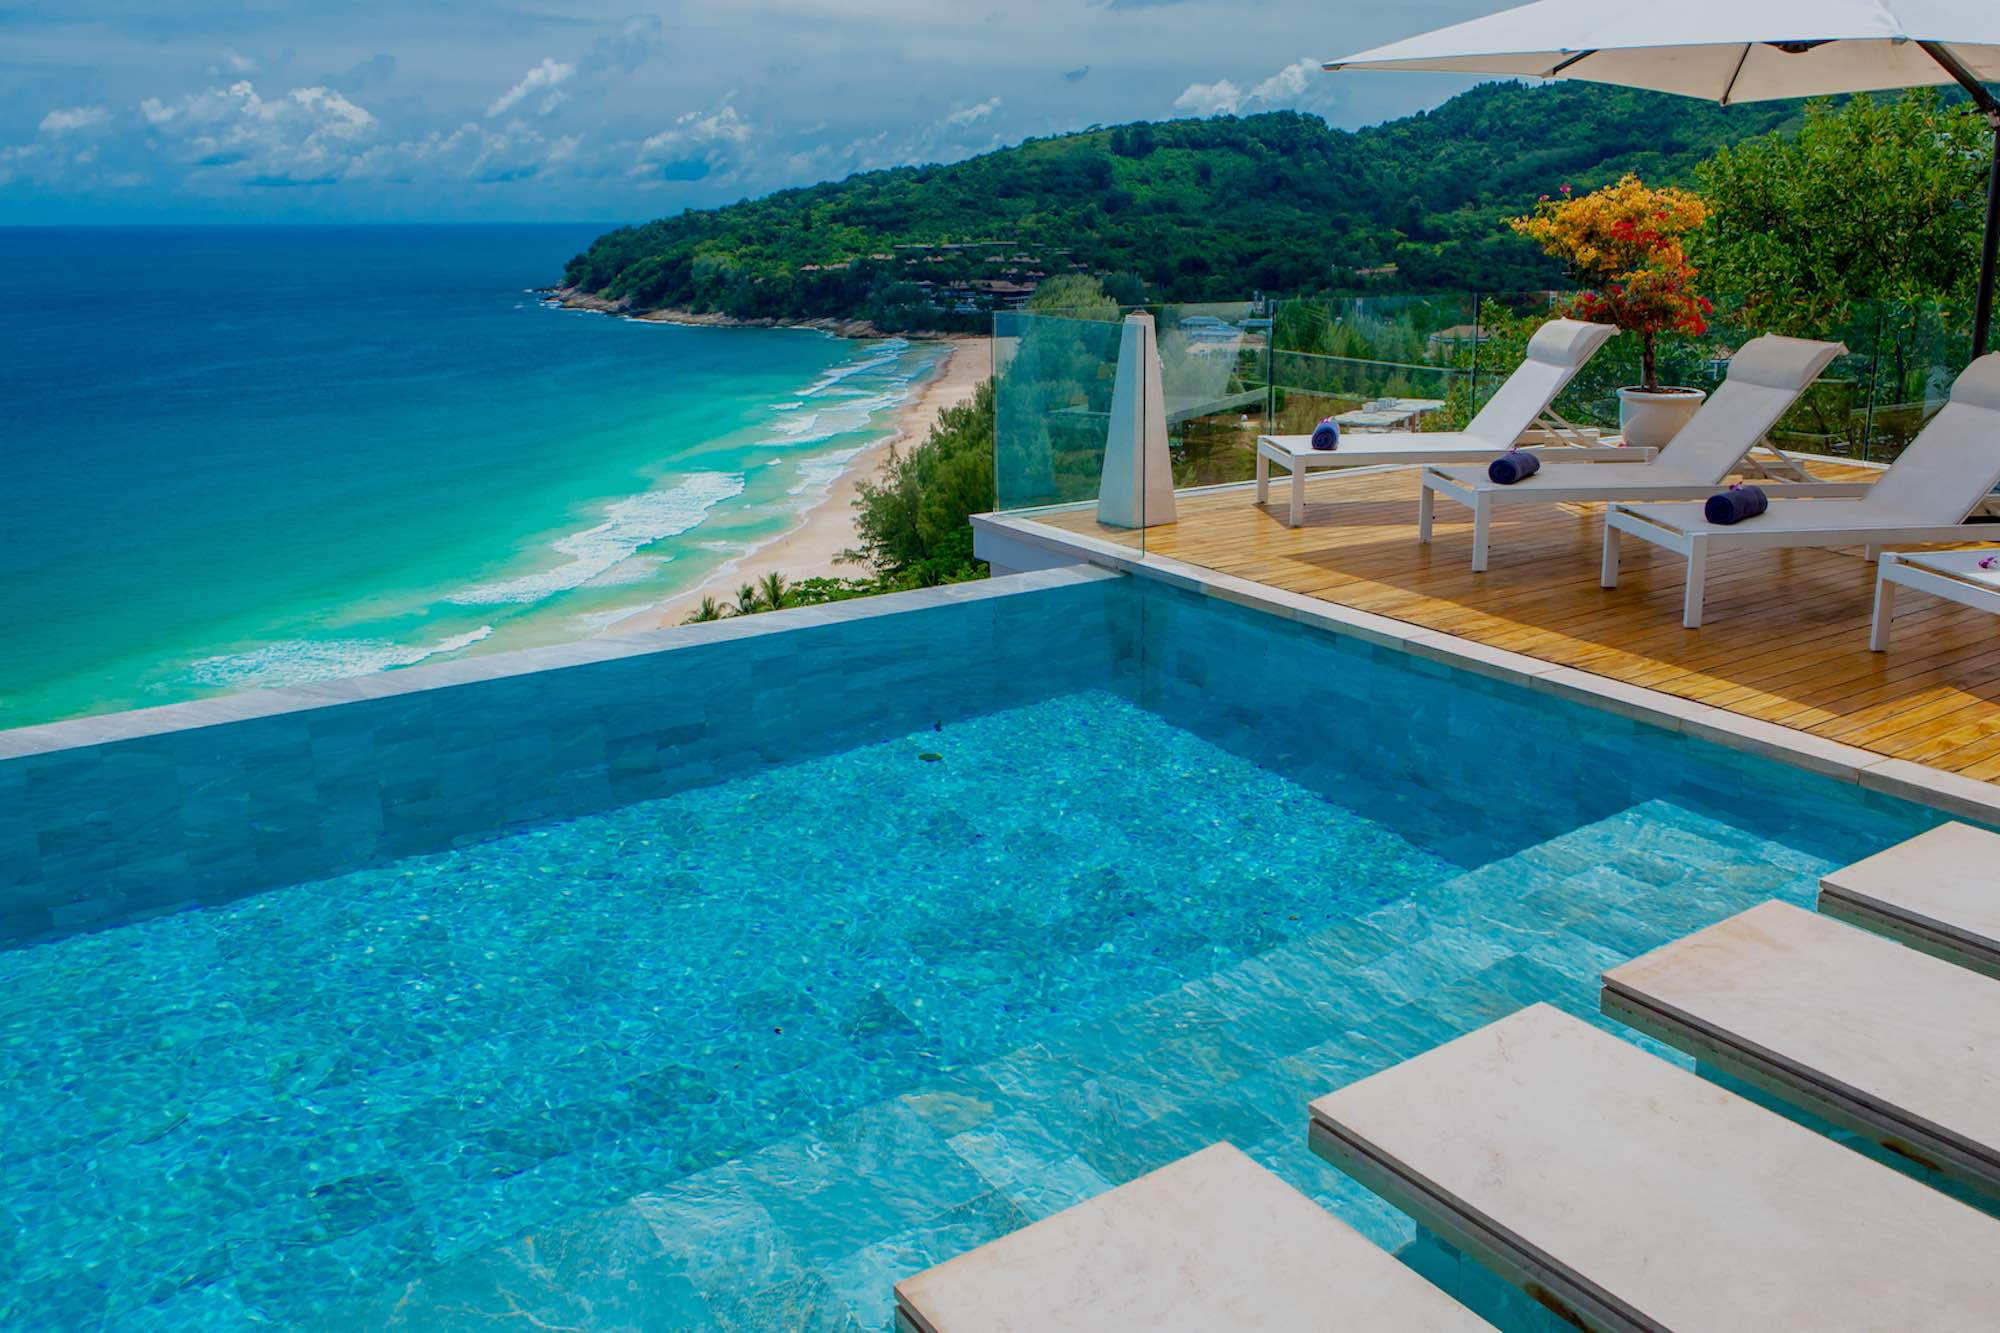 10 Phuket Villas with a Million Dollar View